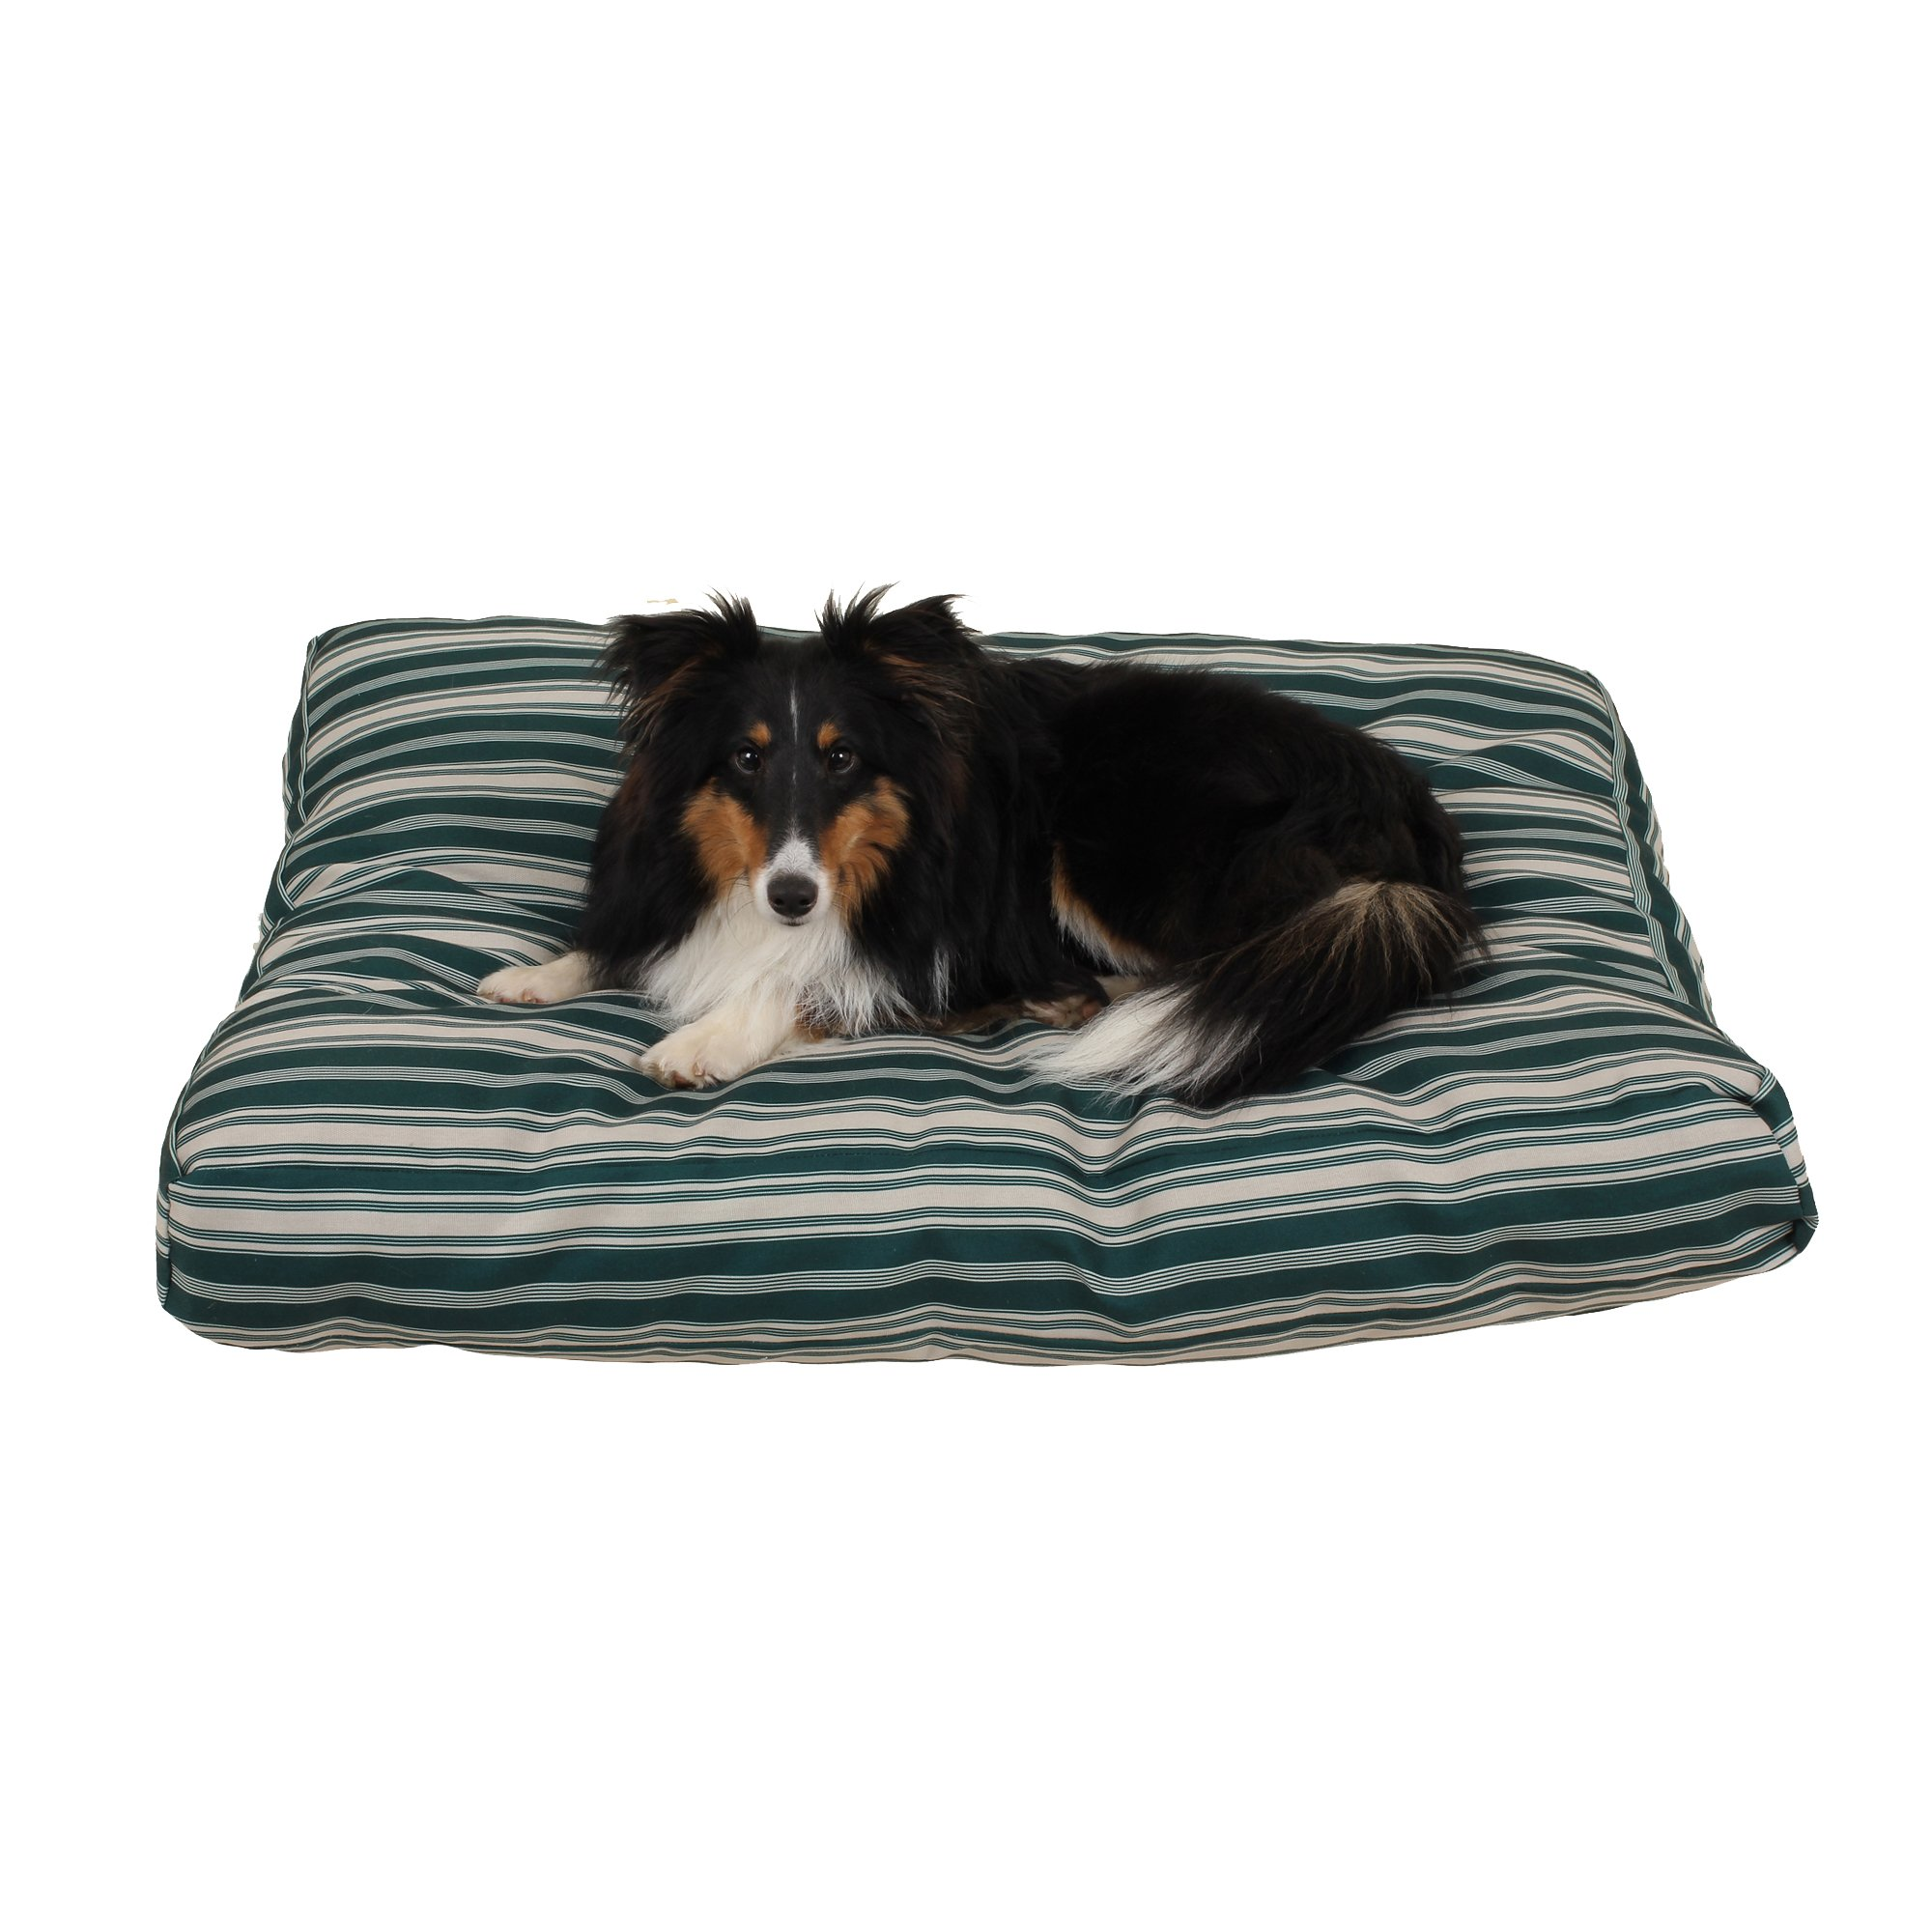 Carolina Pet Company Indoor Outdoor Jamison Green Striped Dog Bed 36 L X 27 W X 4 H 27X36X4